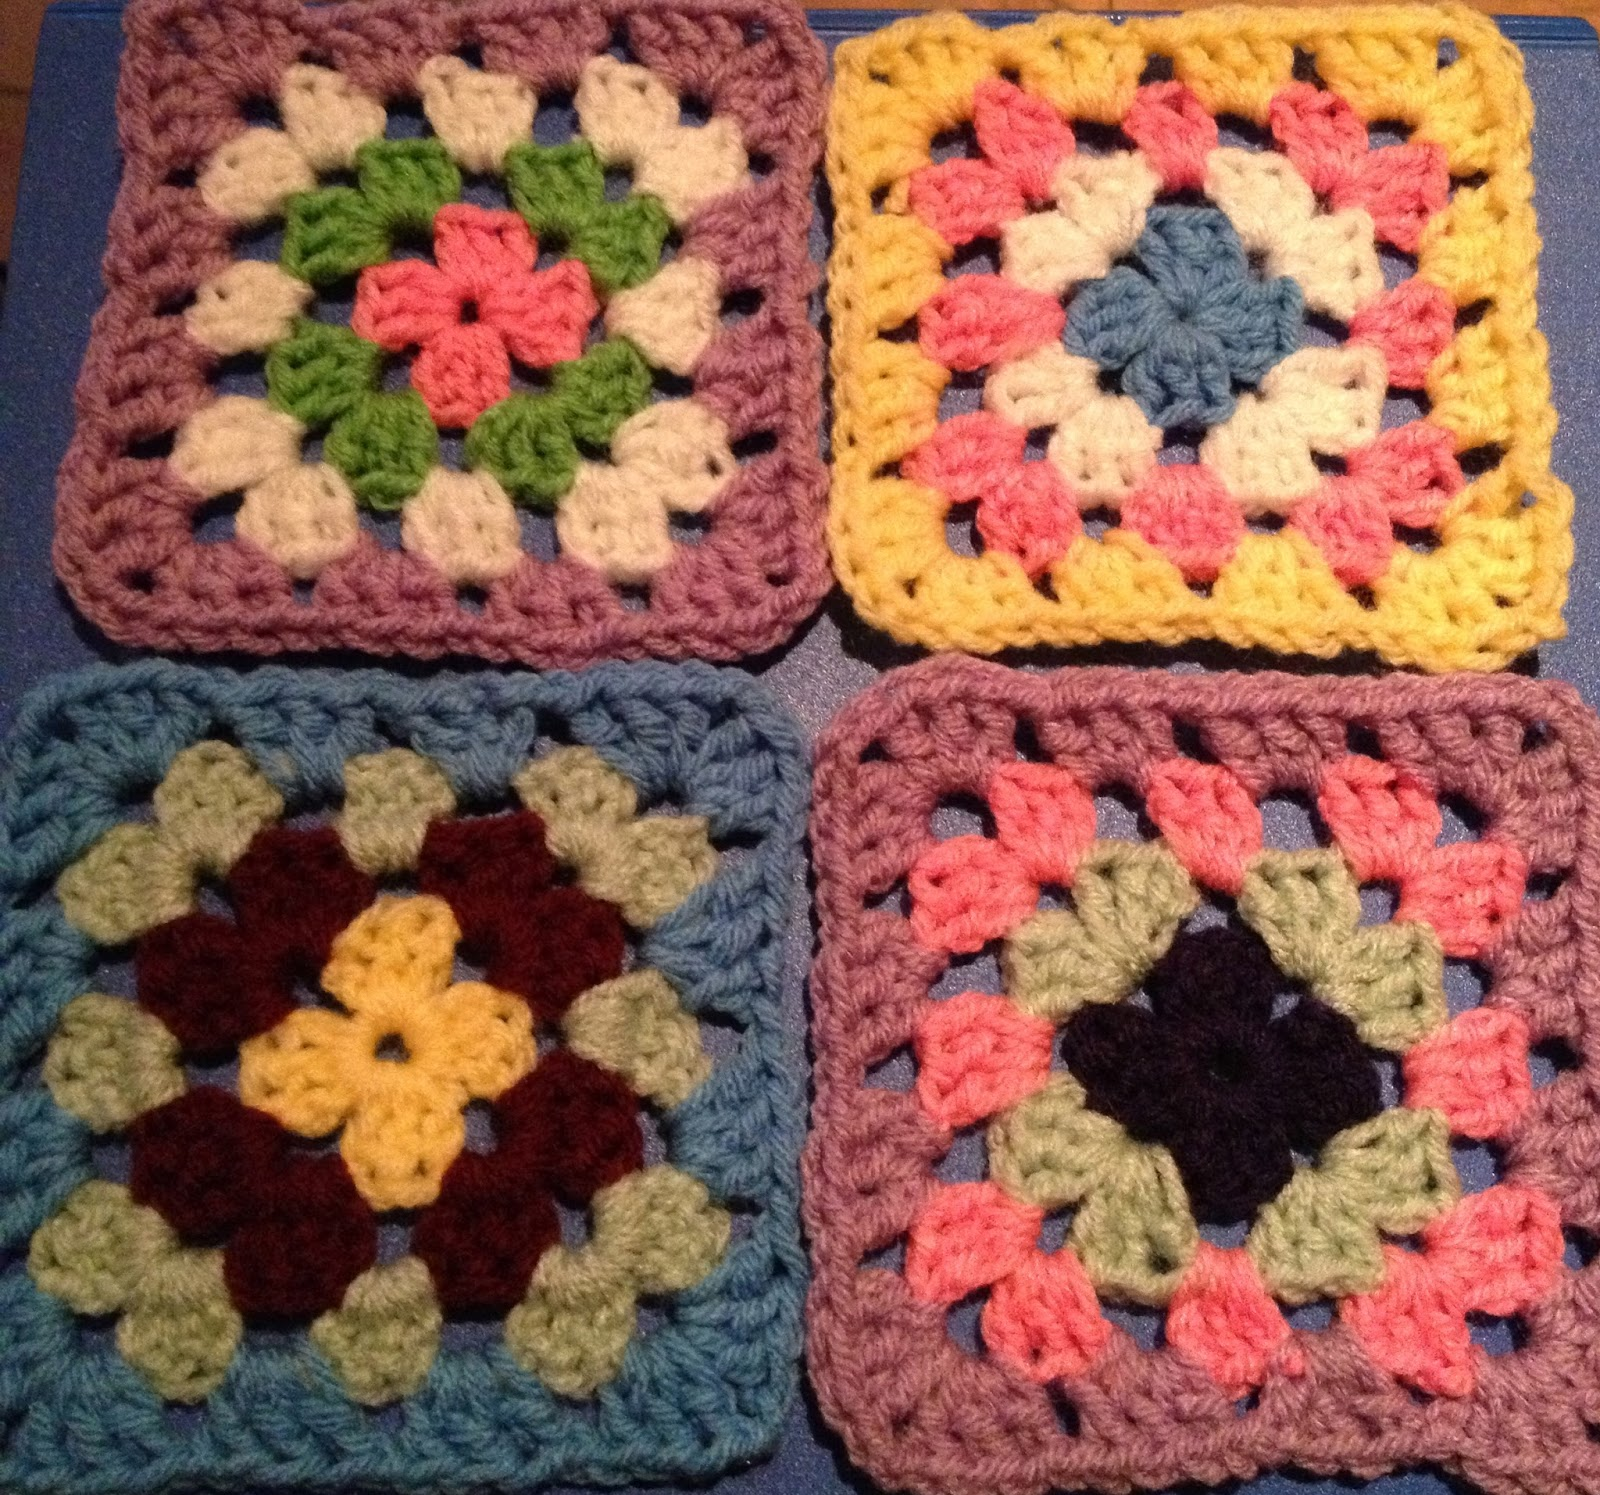 Free Crochet Granny Square Patterns For Beginners : Free Crochet Connection: Basic Granny Square Pattern (for ...